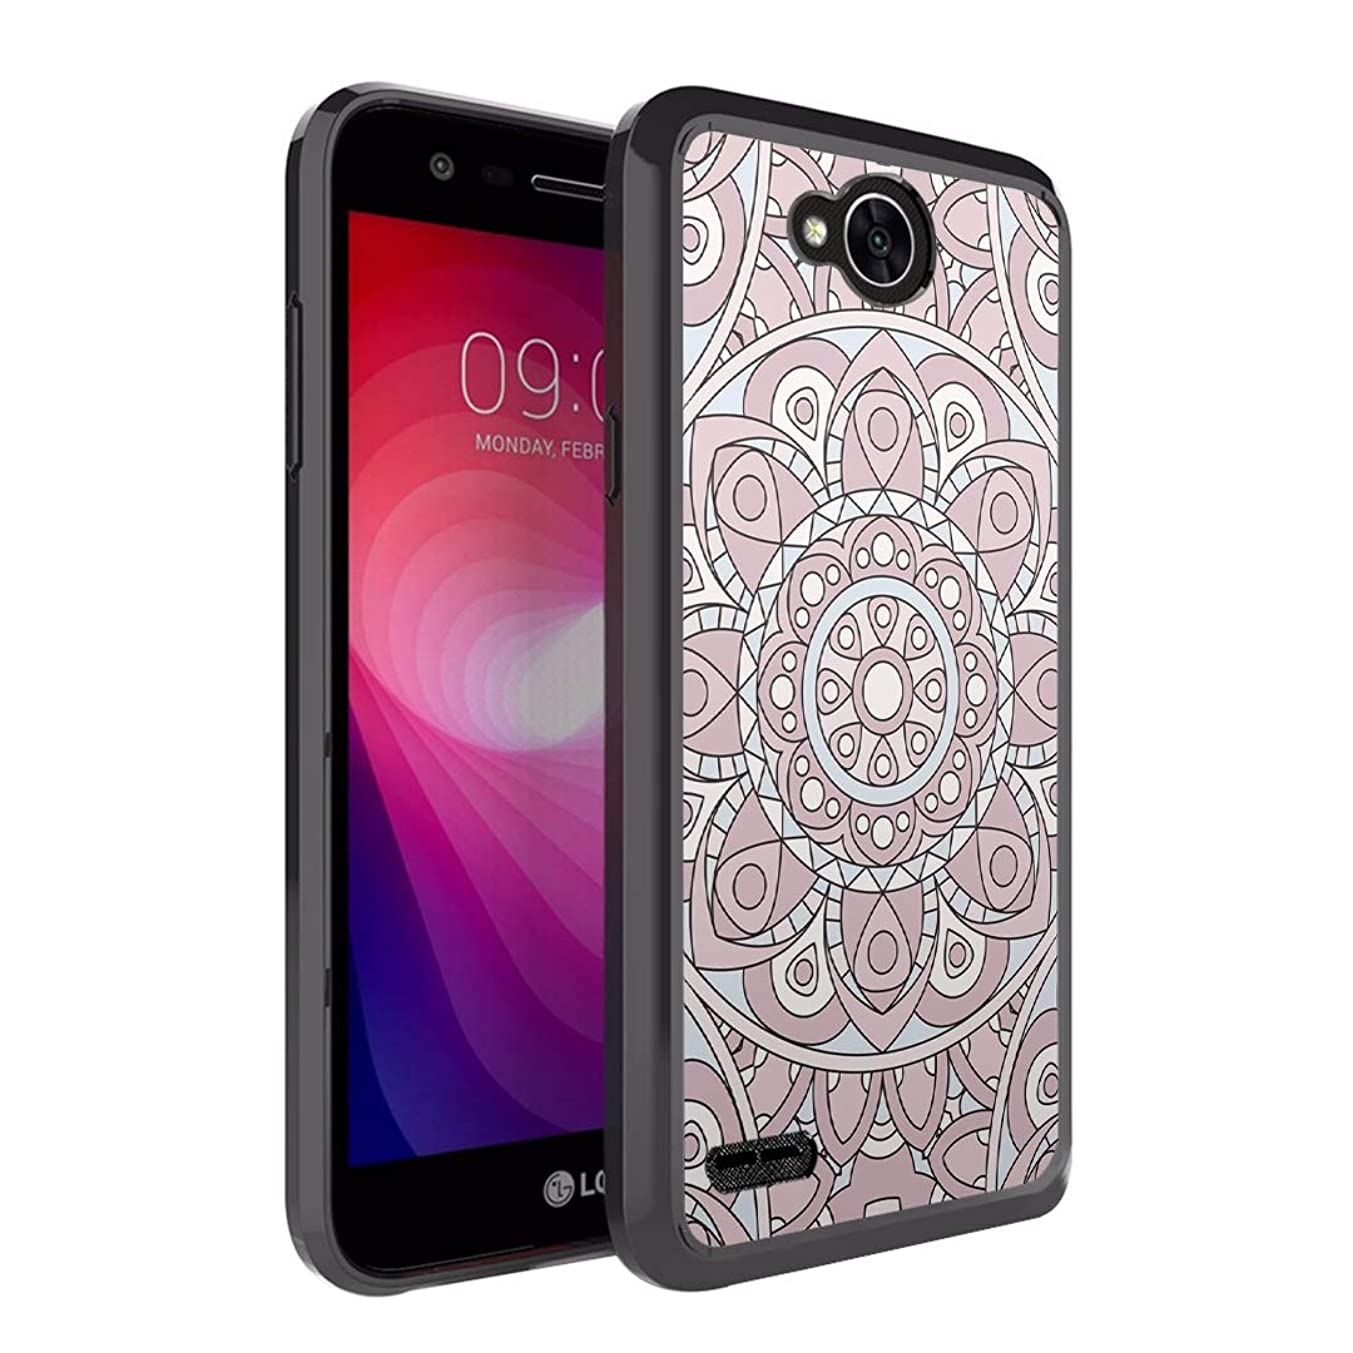 Moriko Case Compatible with LG Fiesta 2, LG X Power 2, LG X Charge, Fiesta LTE, K10 Power, LS7 4G LTE [Drop Protection Slim Bumper Case Black] for LG X Power 2 - (Mauve Bohemian)